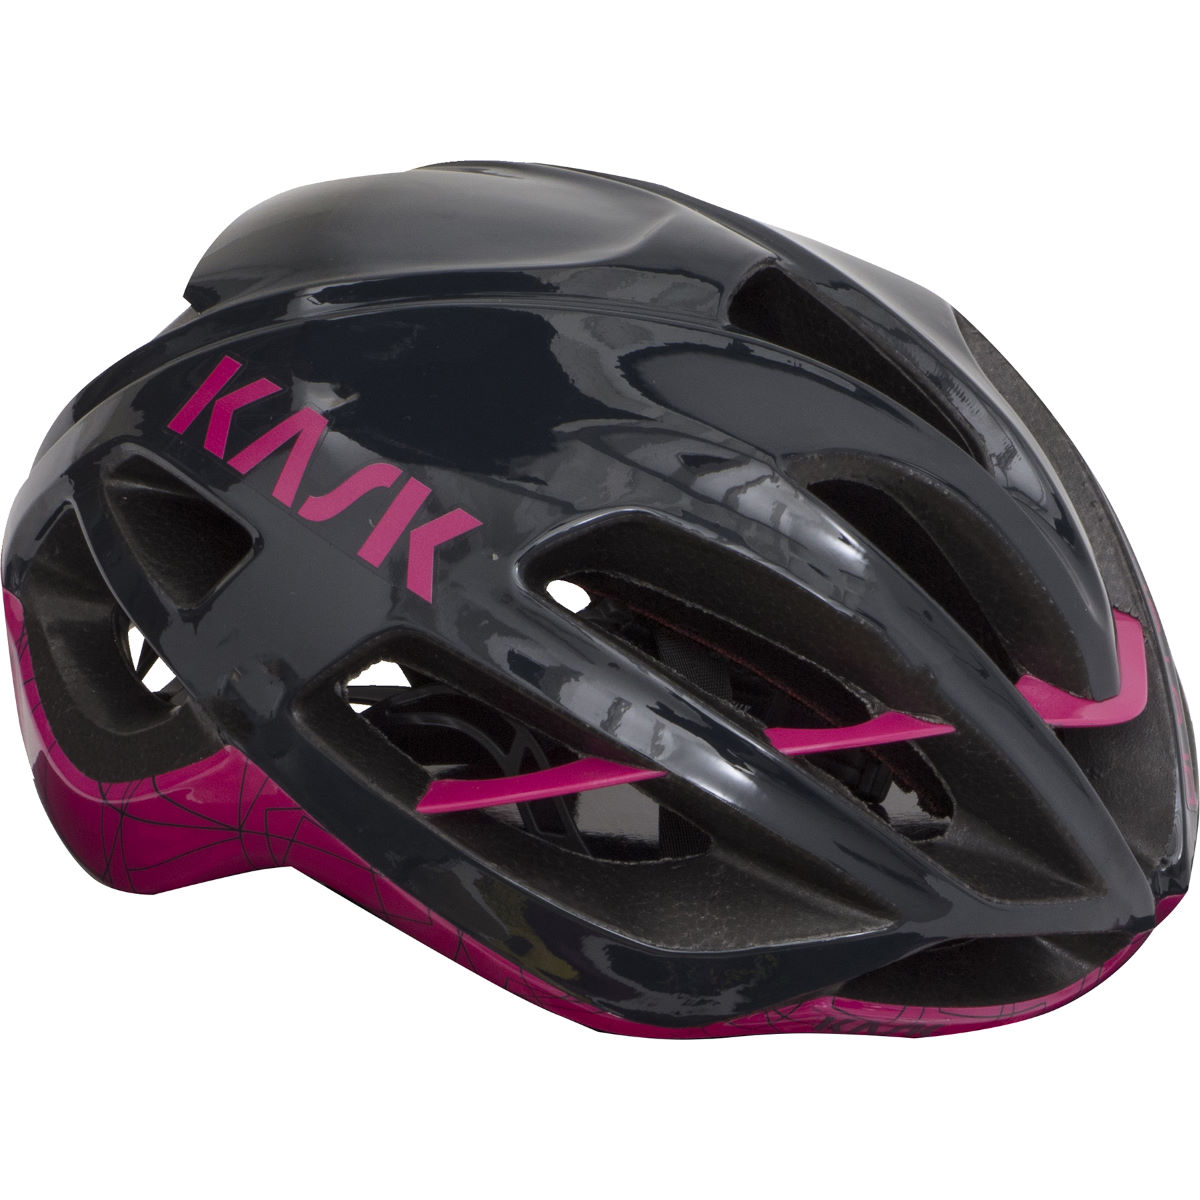 Kask Kask Protone Protect Your Style Helmet   Helmets